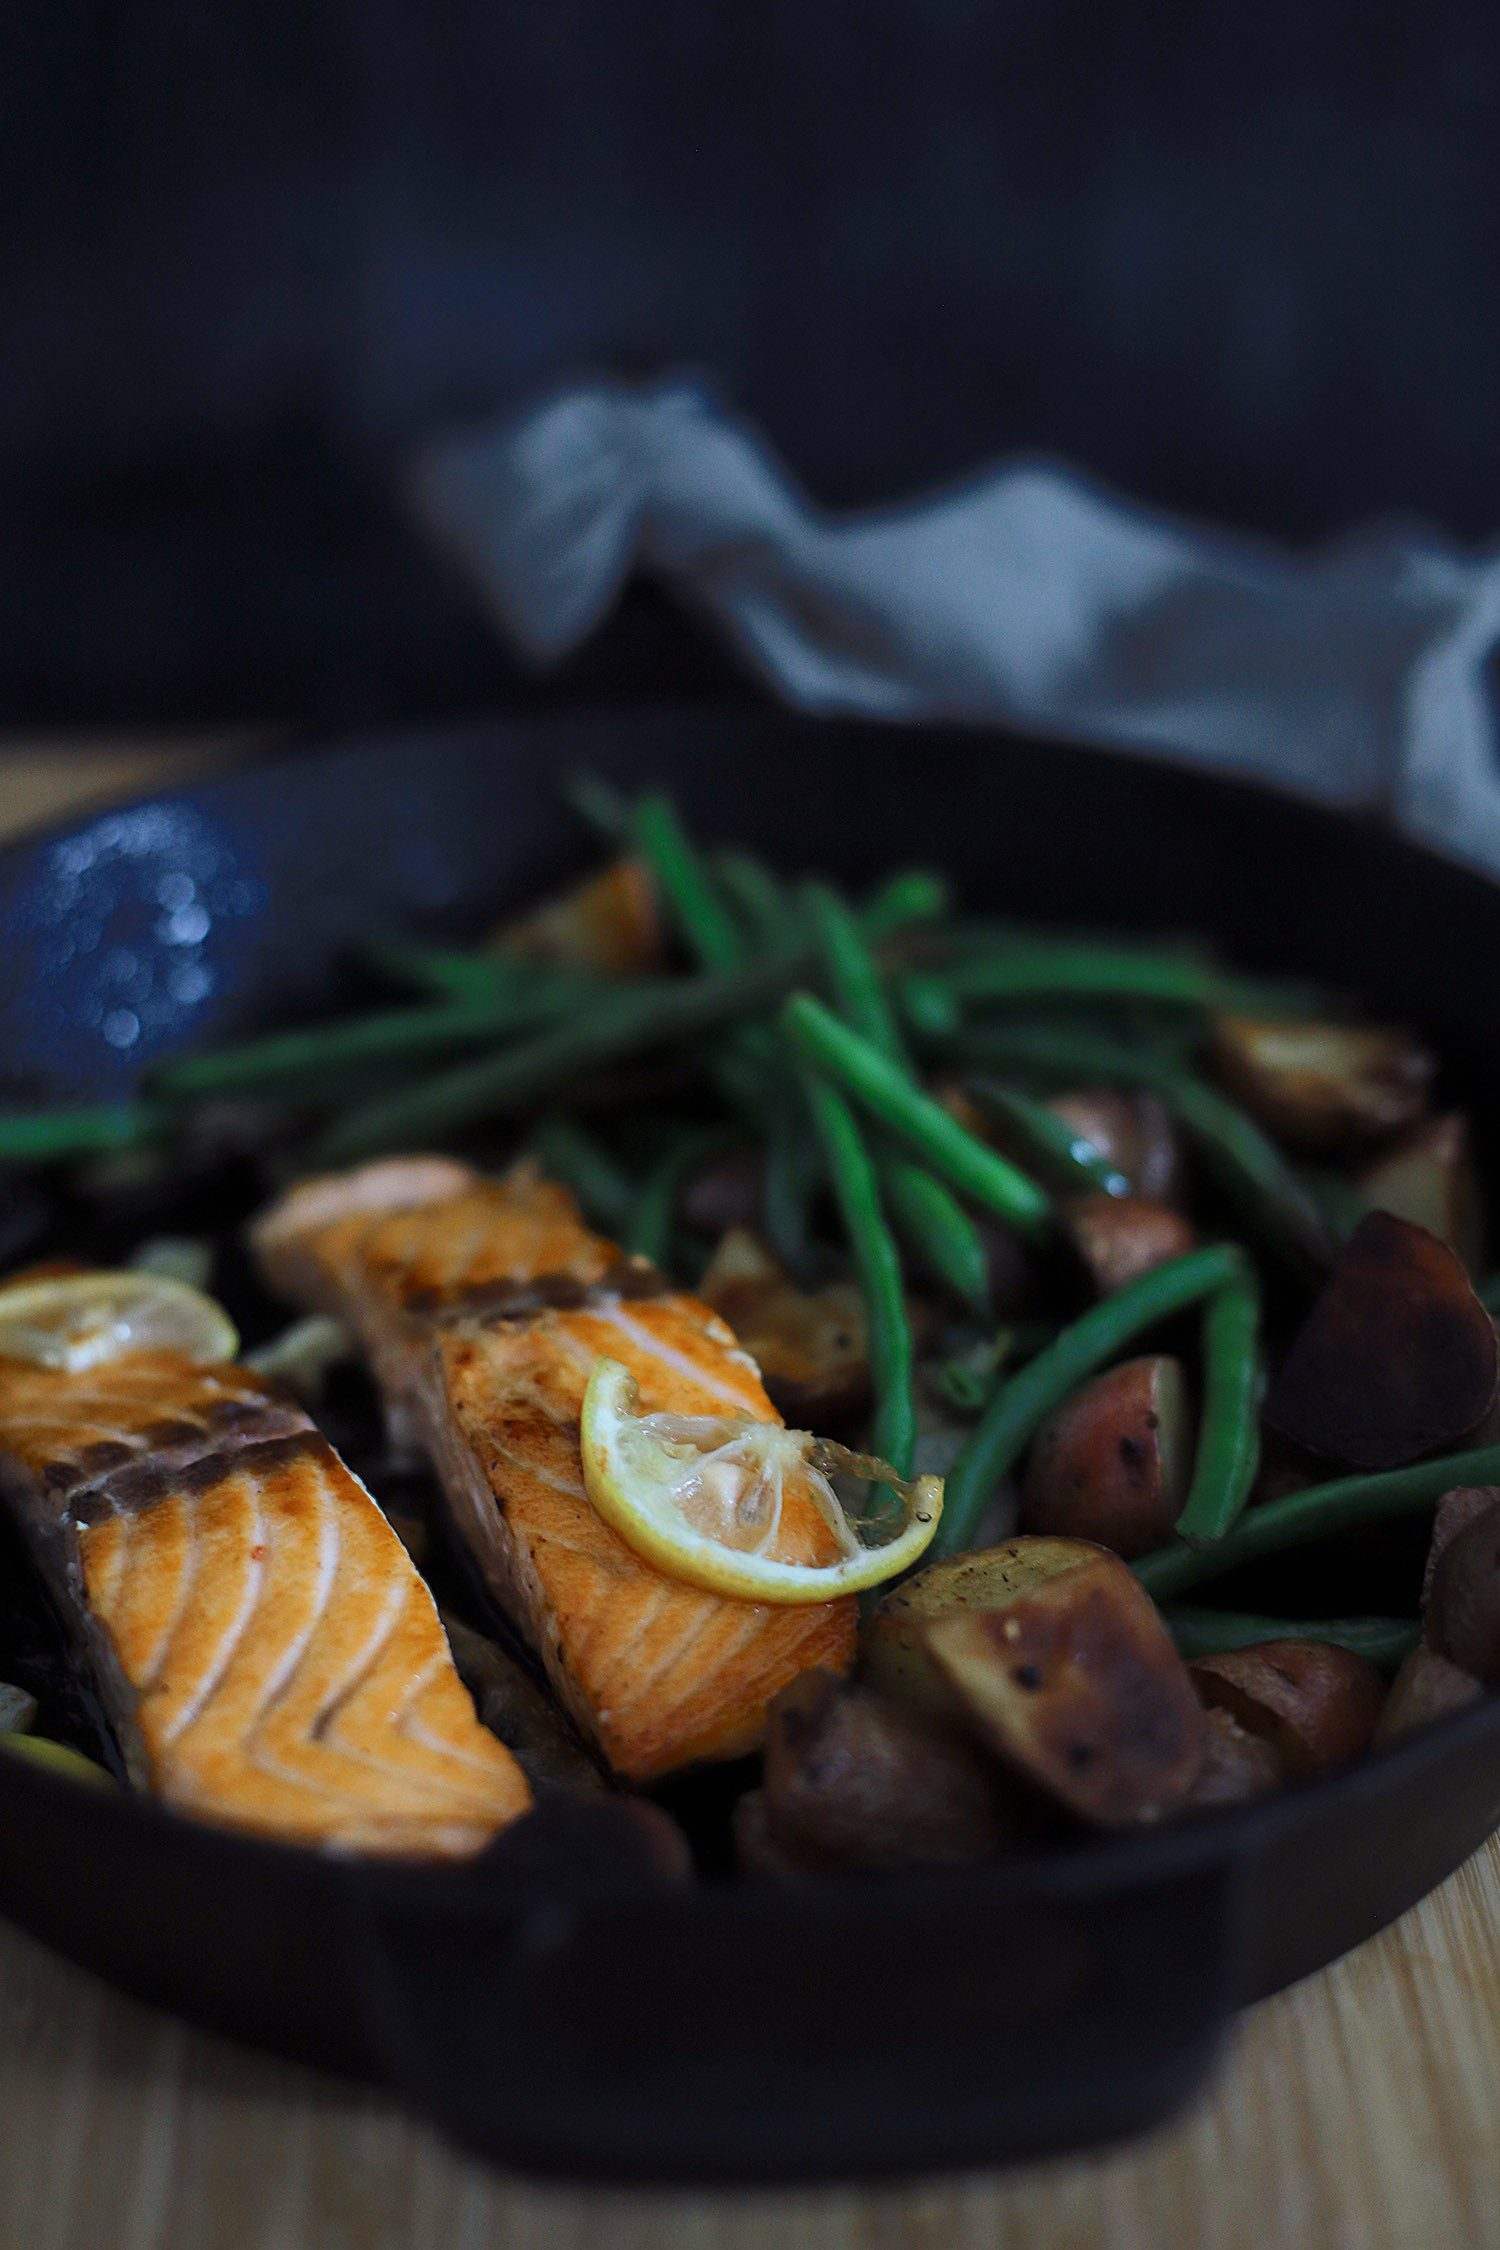 Wondering how to cook salmon? We've got such a simple and easy cast iron skillet salmon recipe with a delicious garlic lemon butter glaze. Pan seared salmon is an easy way to get it just right, every time… in fact, a kid can do it!   Salmon Skillet by possible Florida lifestyle blog, Fresh Mommy Blog: image of salmon, green beans, and potatoes in a skillet.